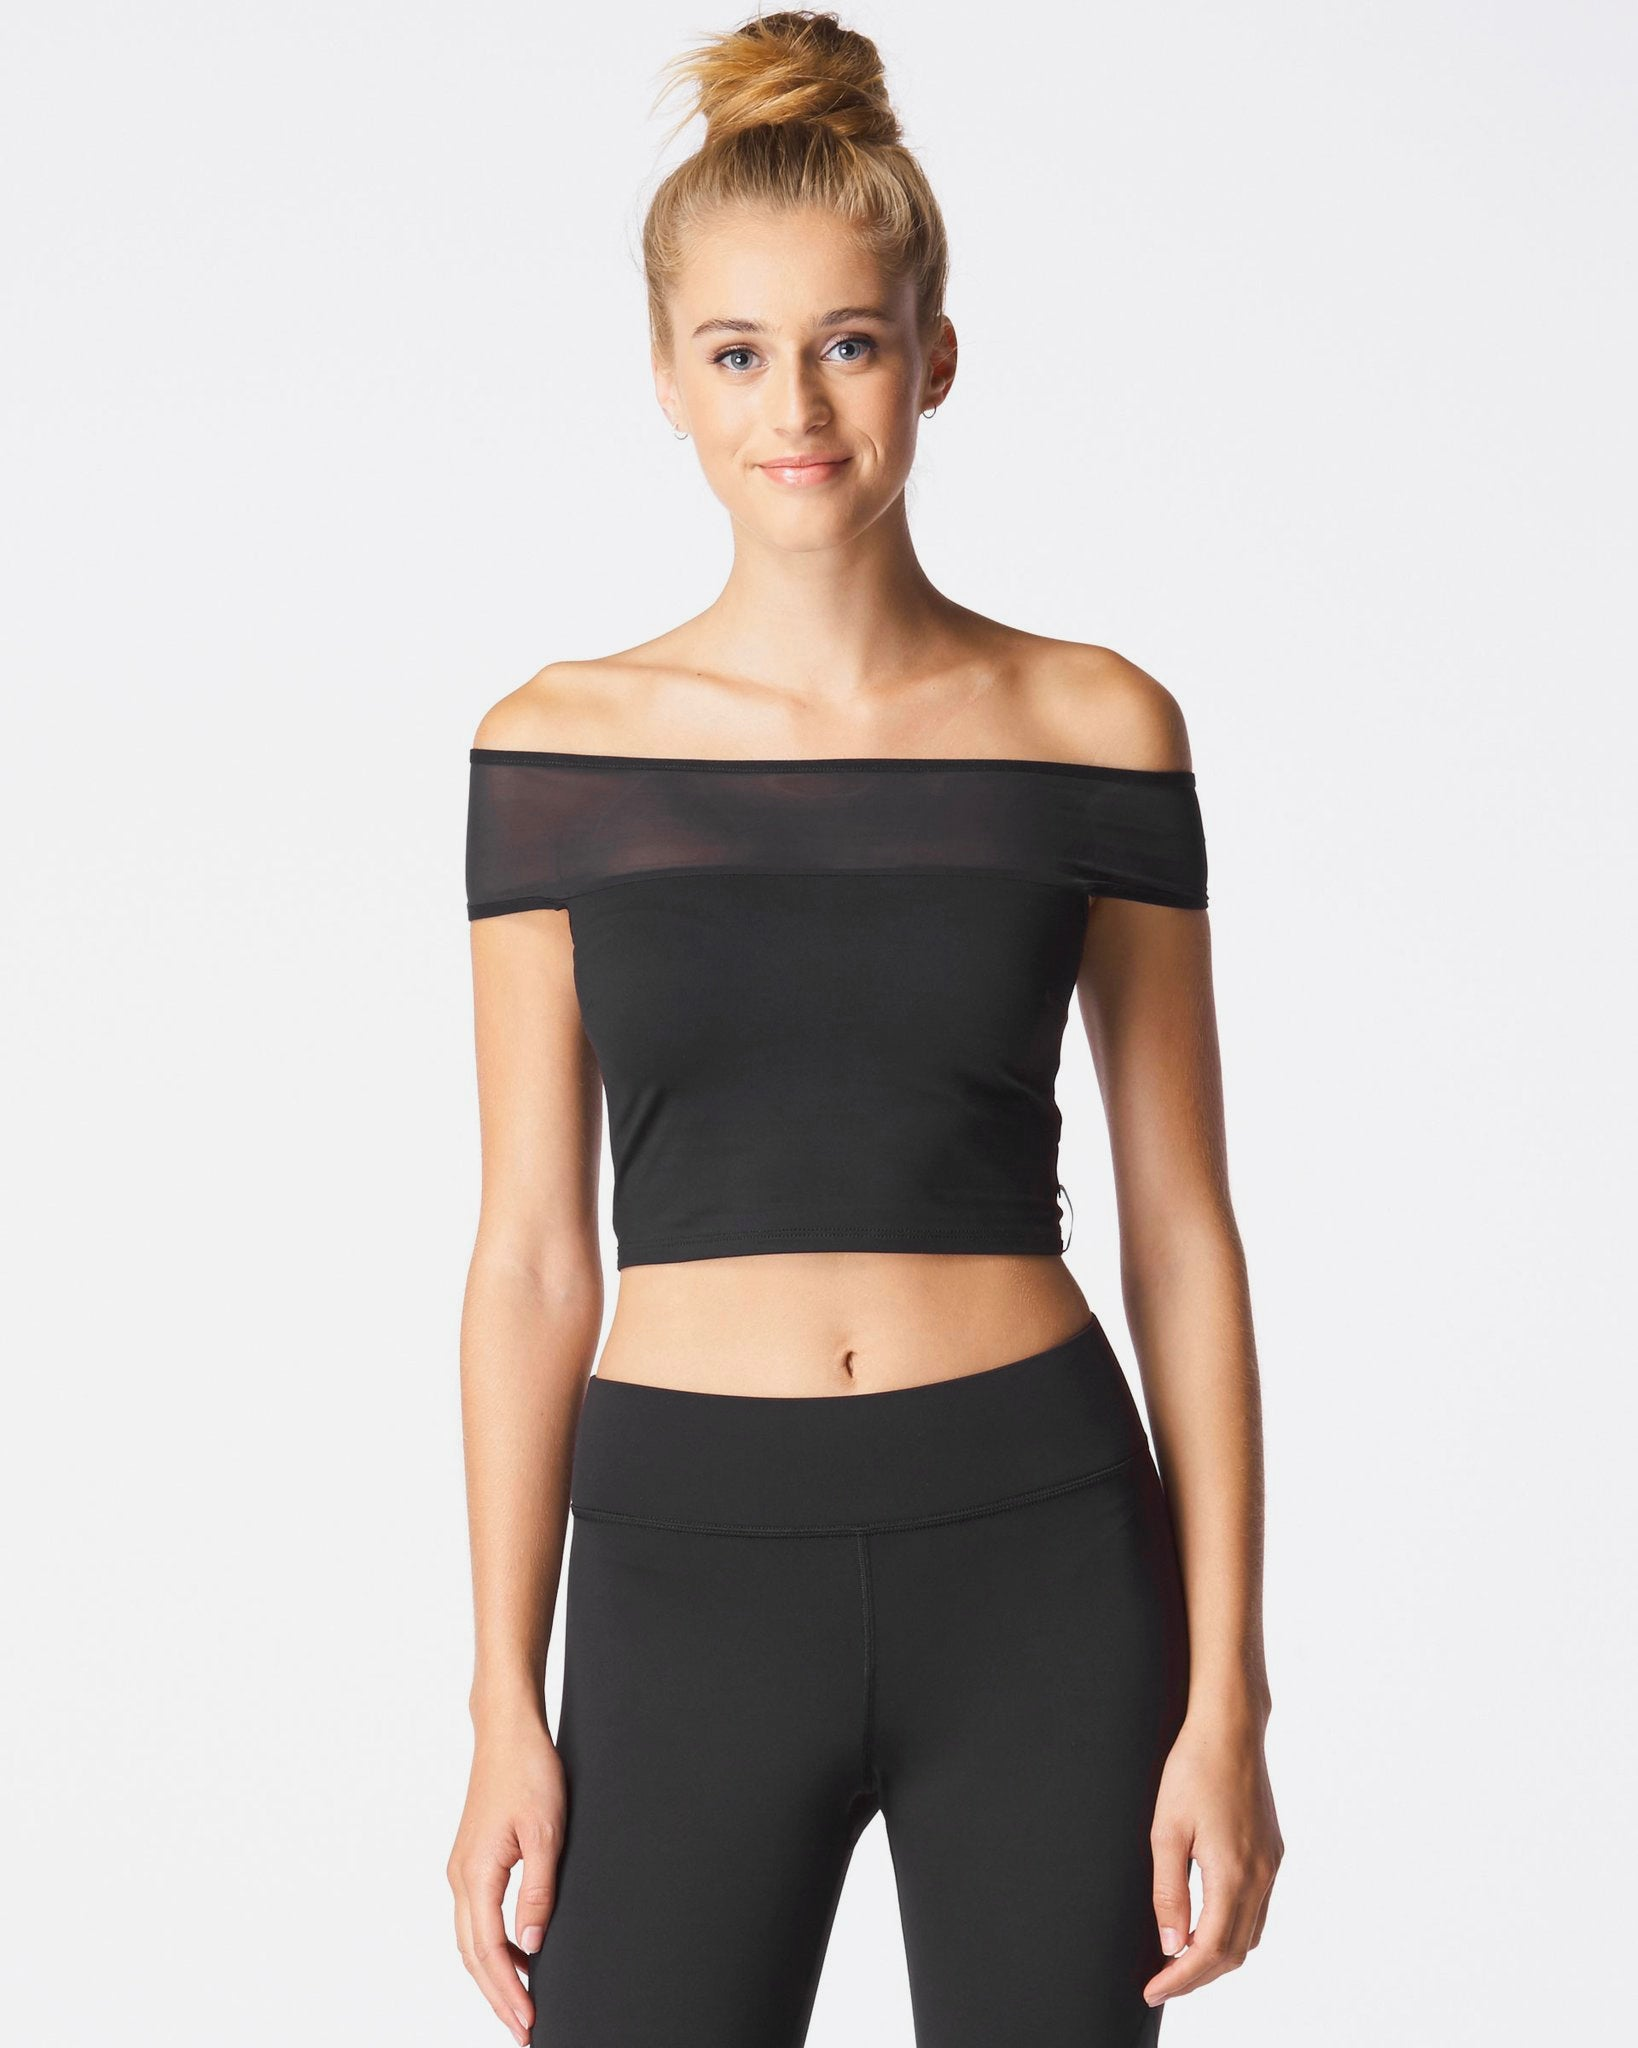 lightning-crop-top-black